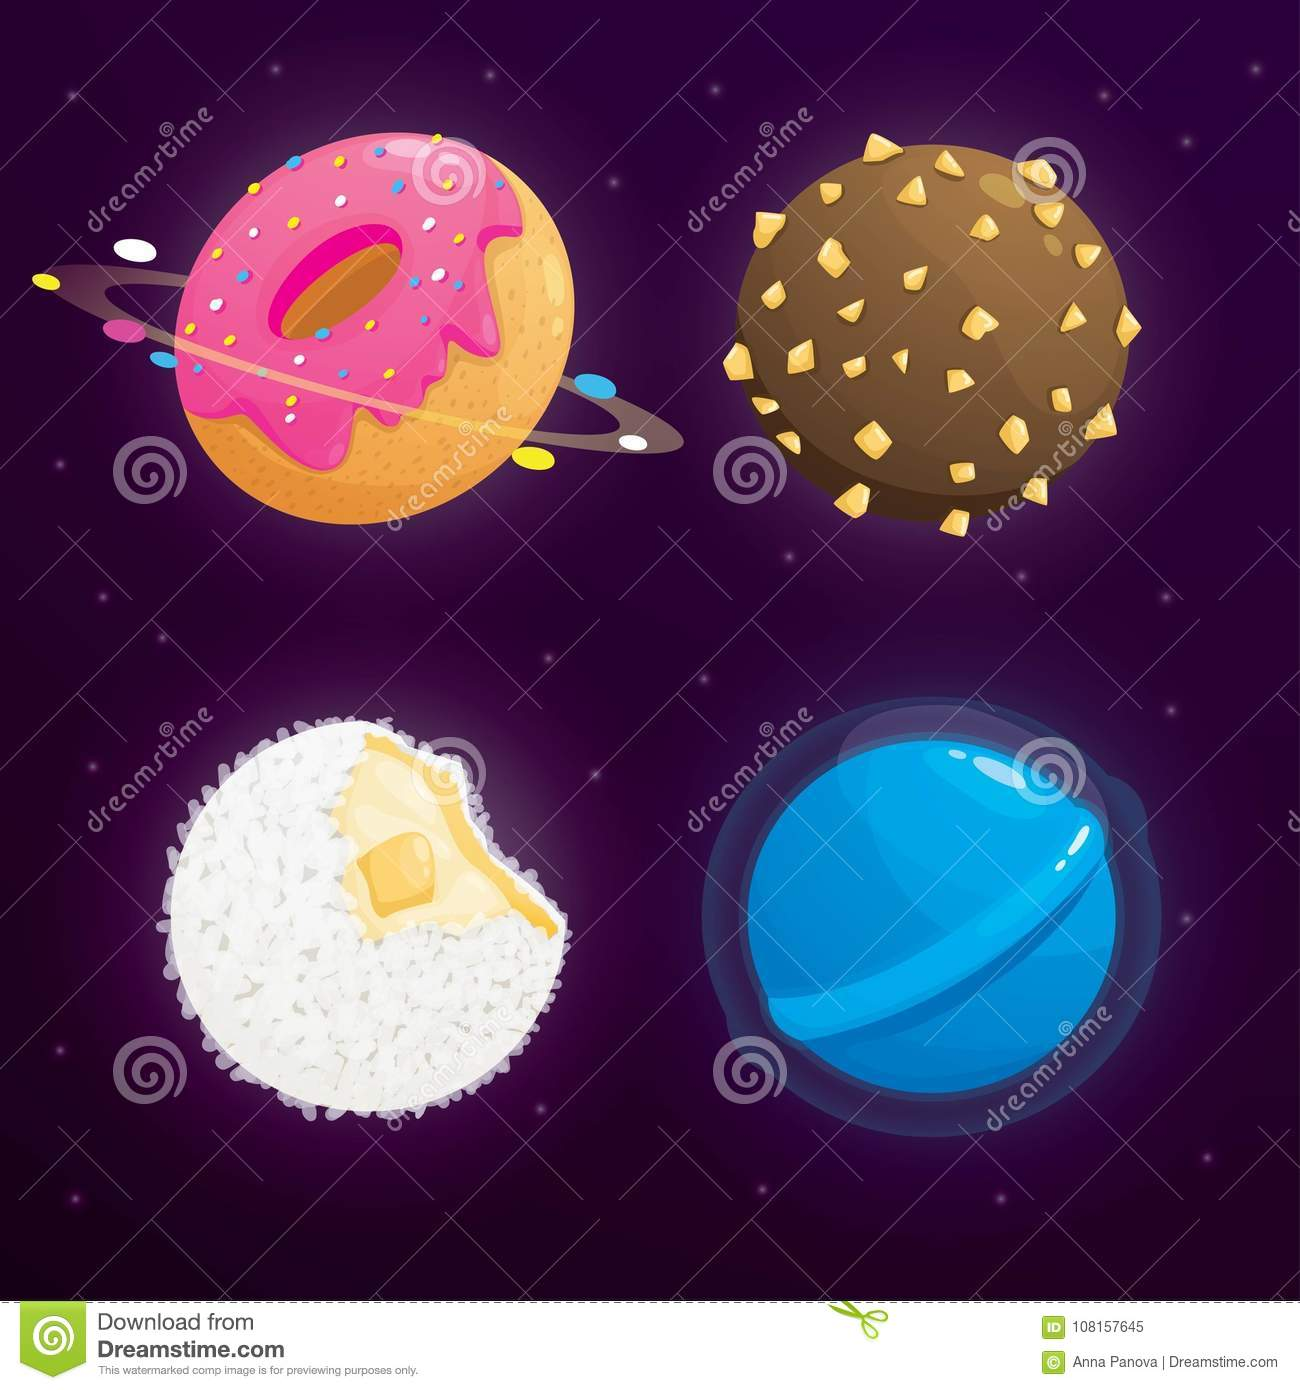 food planet galaxy concept fantasy planets set on cosmic background